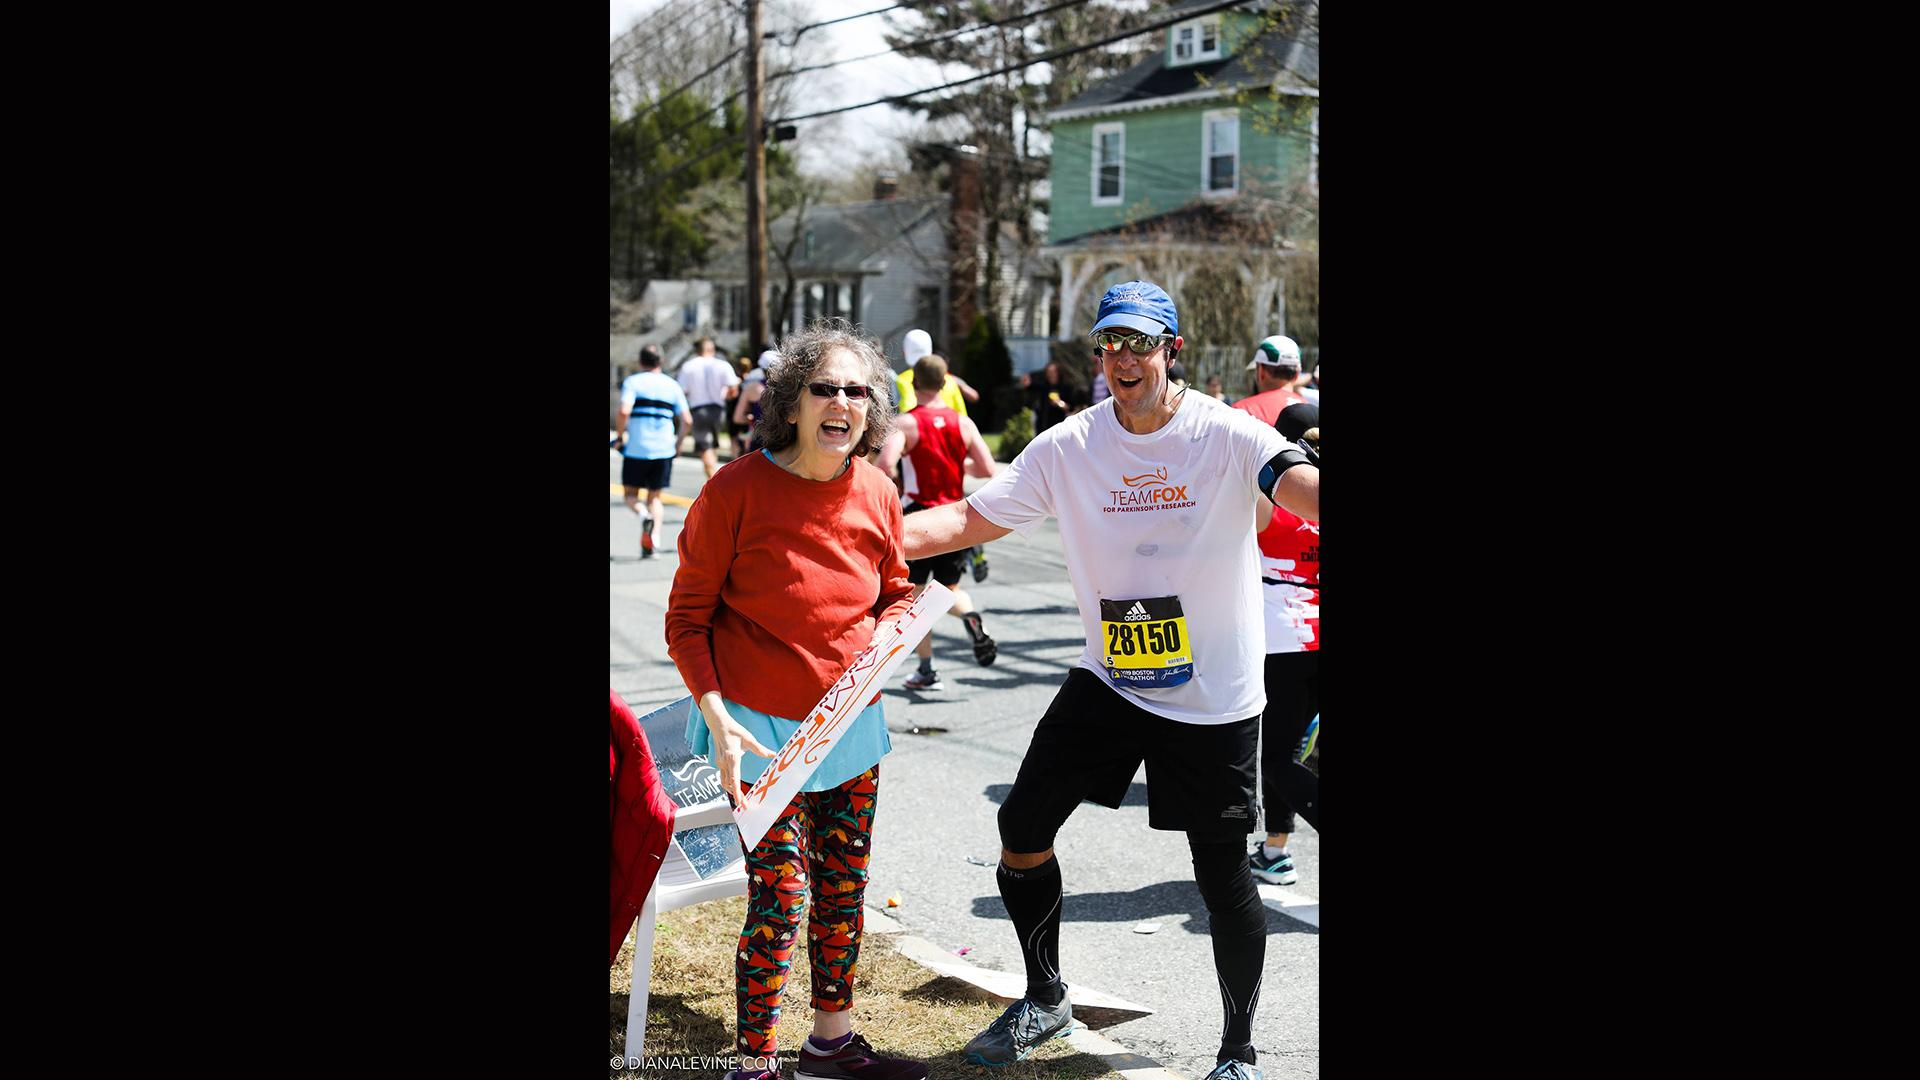 Bill Bucklew, right, poses for a picture with a supporter during the Boston Marathon on April 15, 2019. (Courtesy of Bill Bucklew)